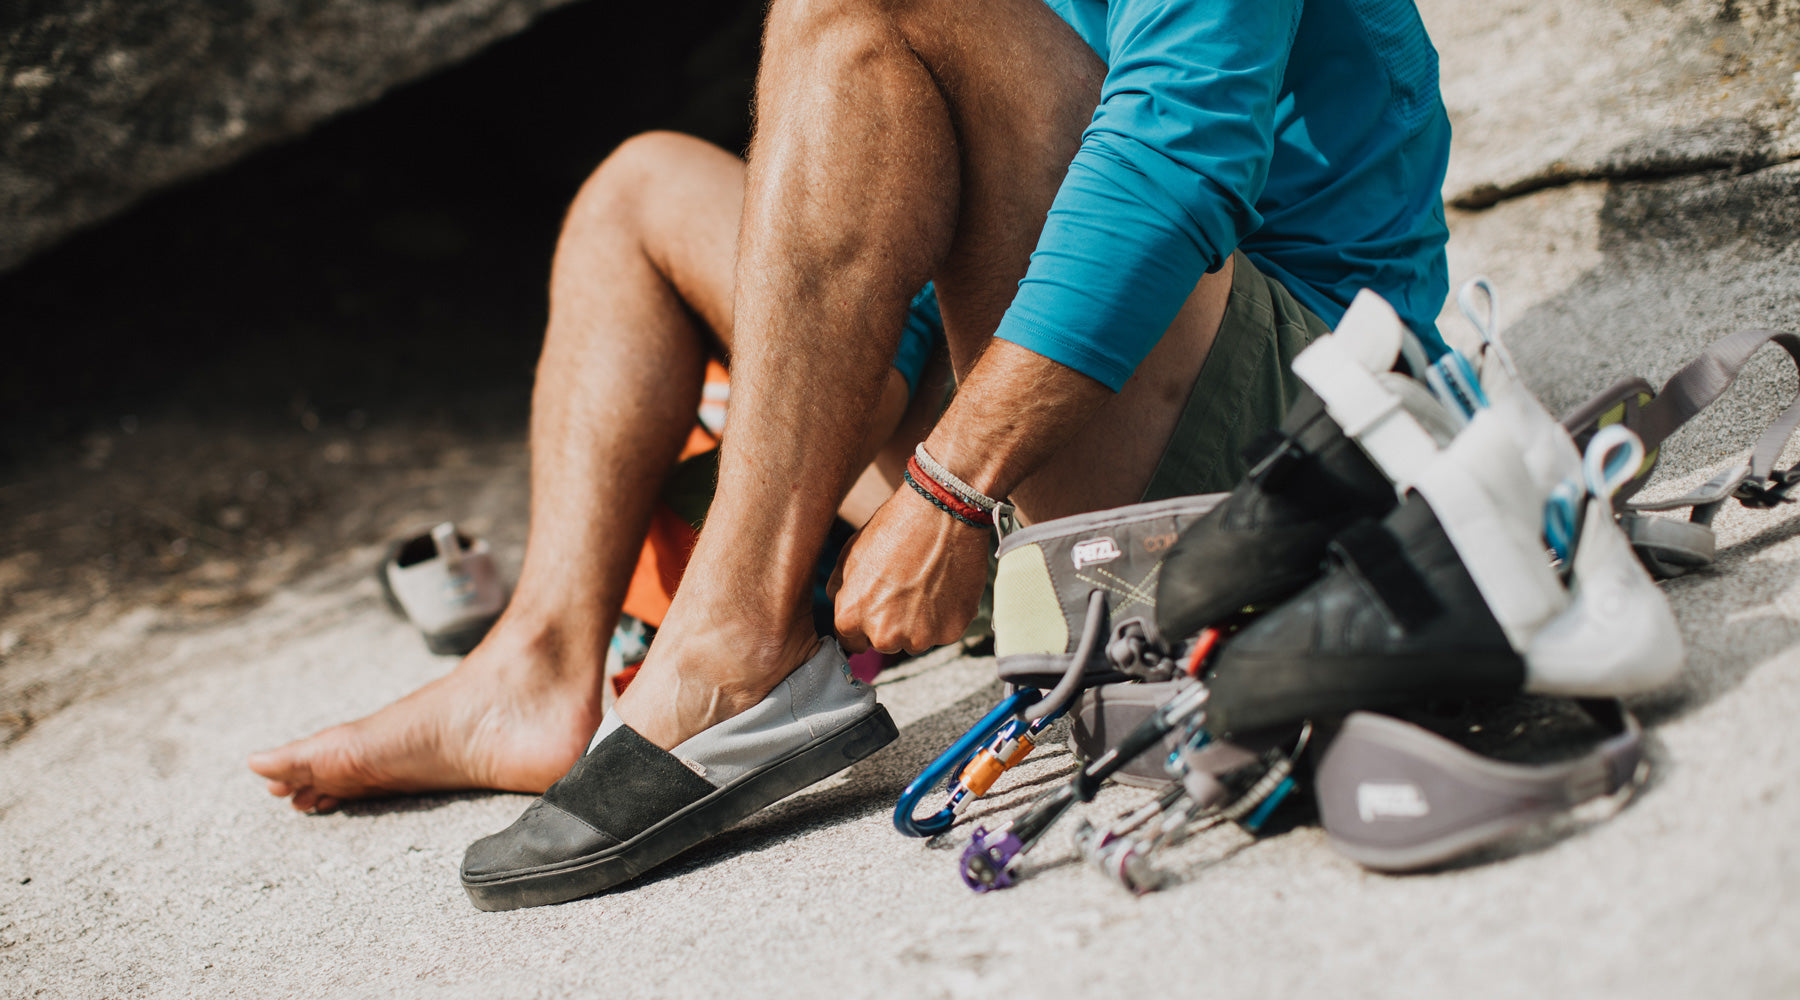 988f0c069b5 toms founder blake mycoskie puts on a pair of so ill toms alpargatas